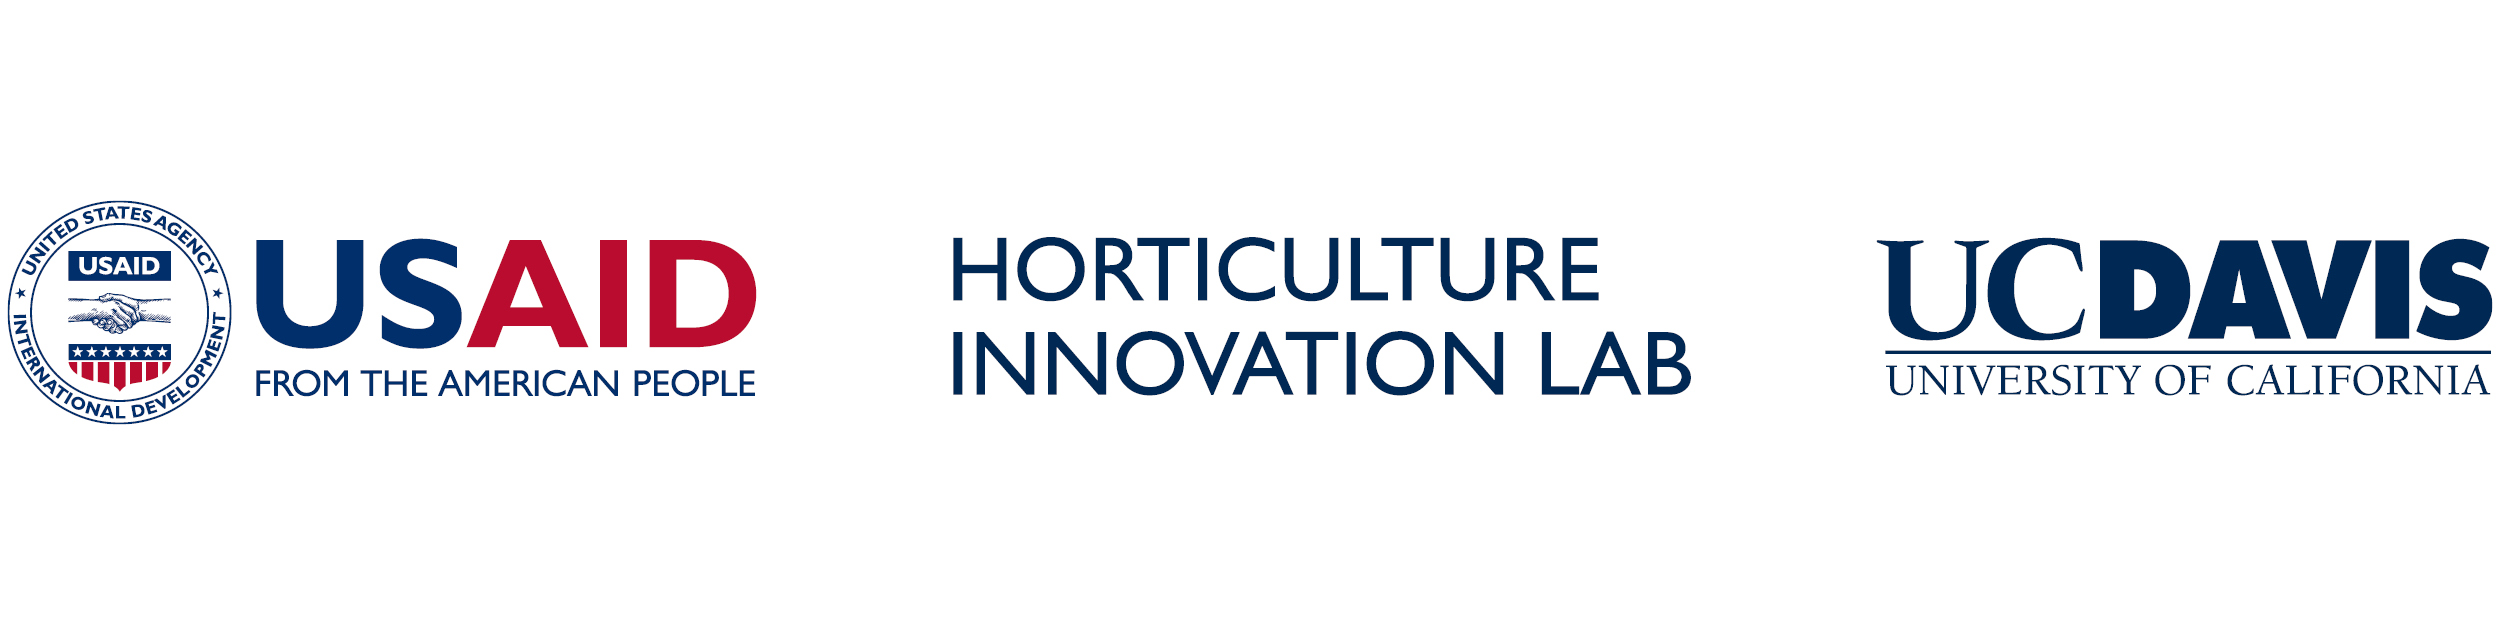 Horticulture Innovation Lab logo - USAID - UC Davis